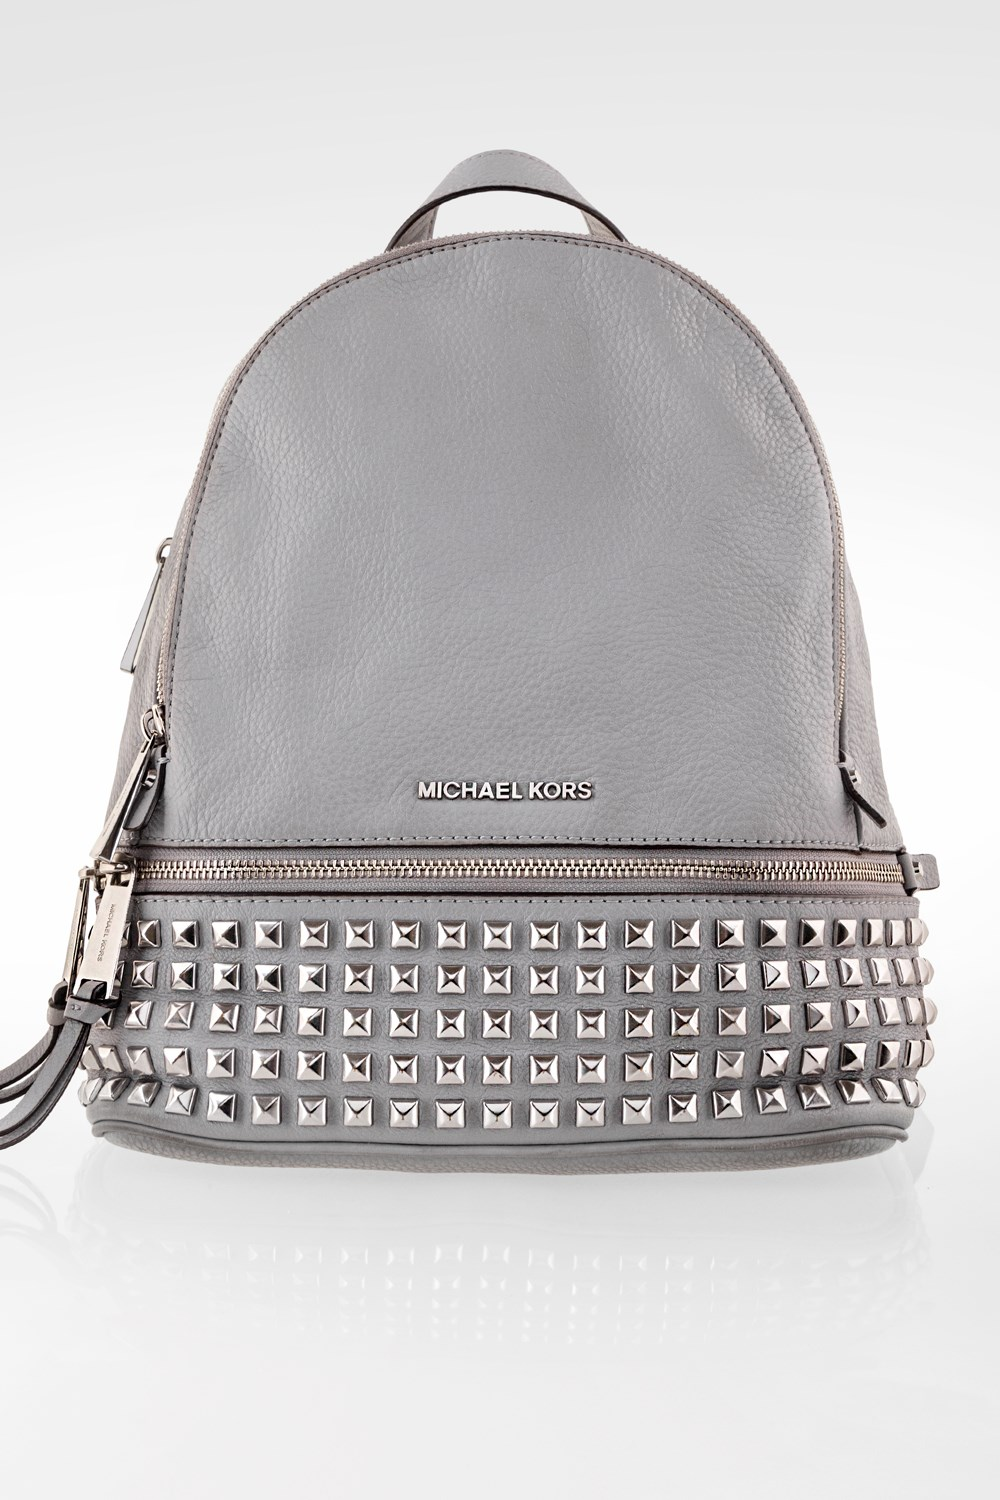 15d014de4 Grey Rhea Medium Studded Leather Backpack, Backpacks, Buy Handbags ...